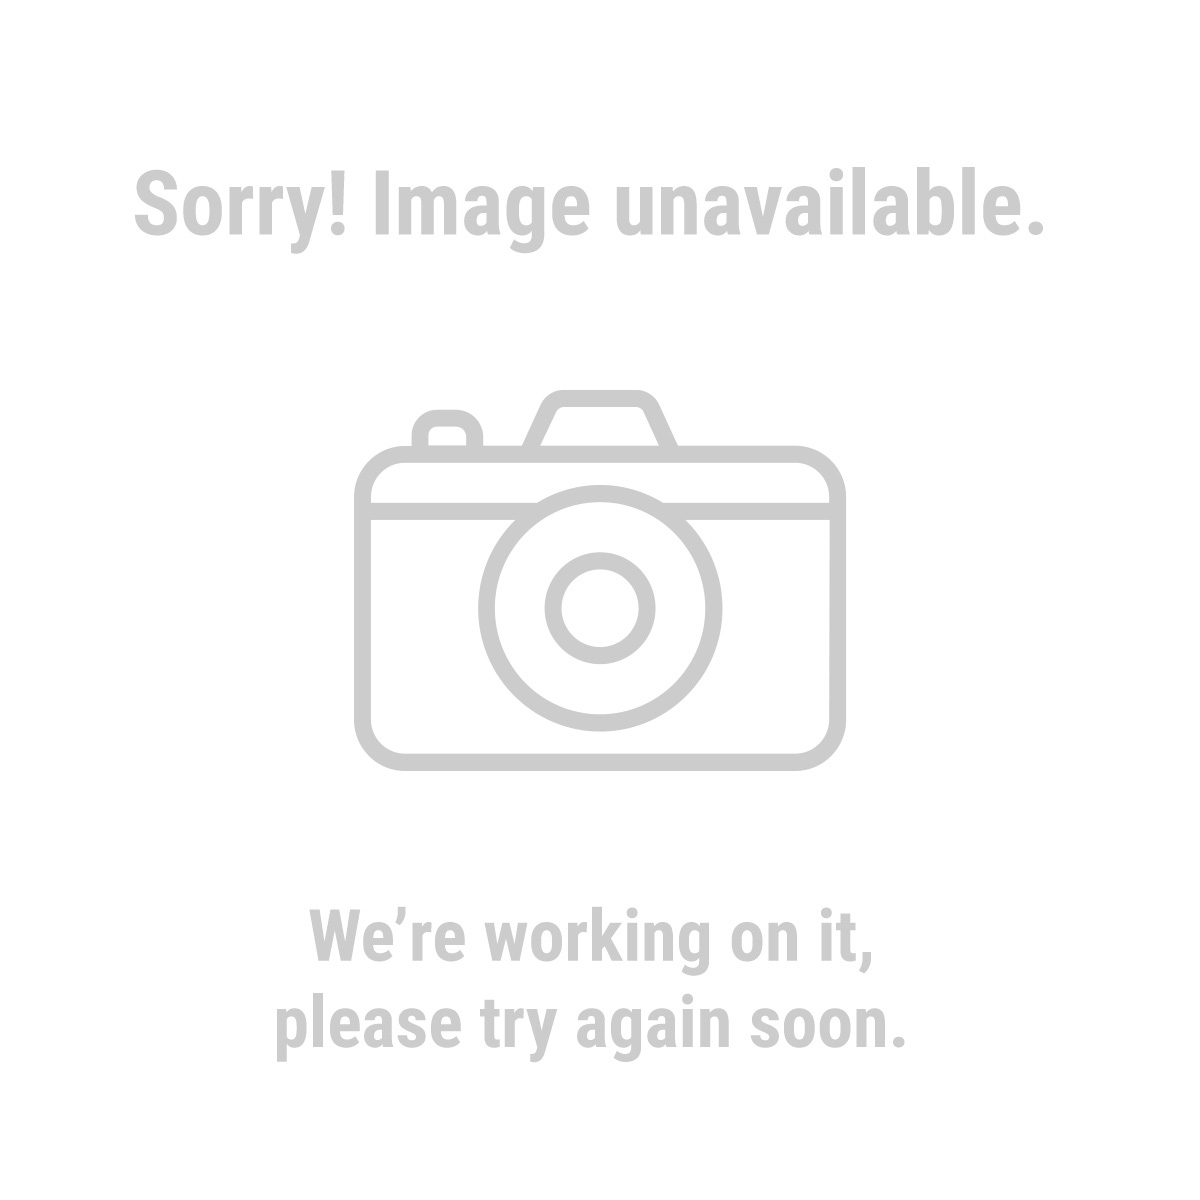 Portland 67255 14 in. Electric Chain Saw